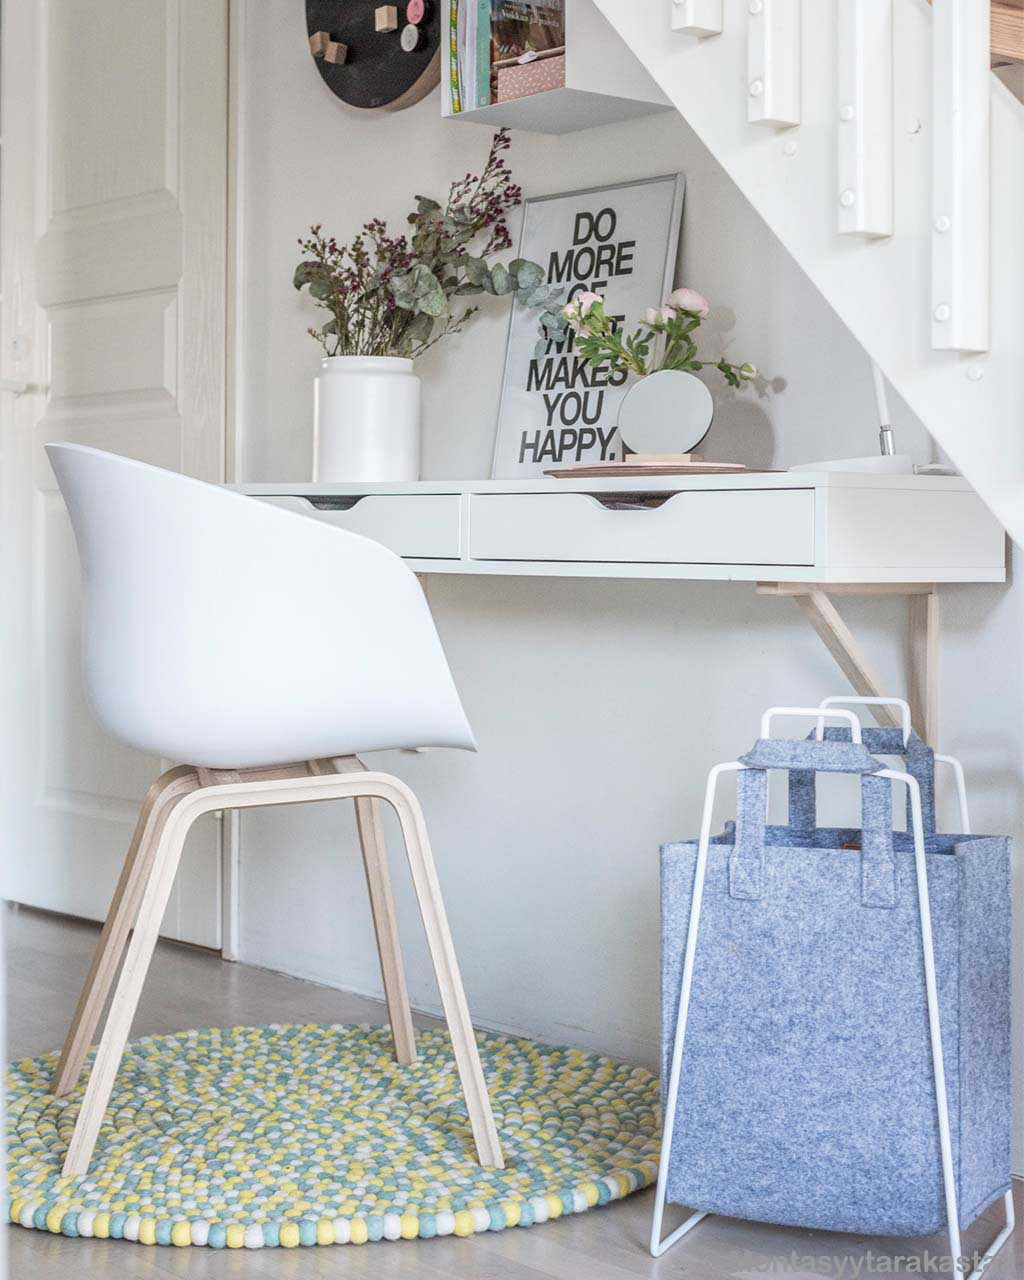 woolen white chair and table nepalese carpet